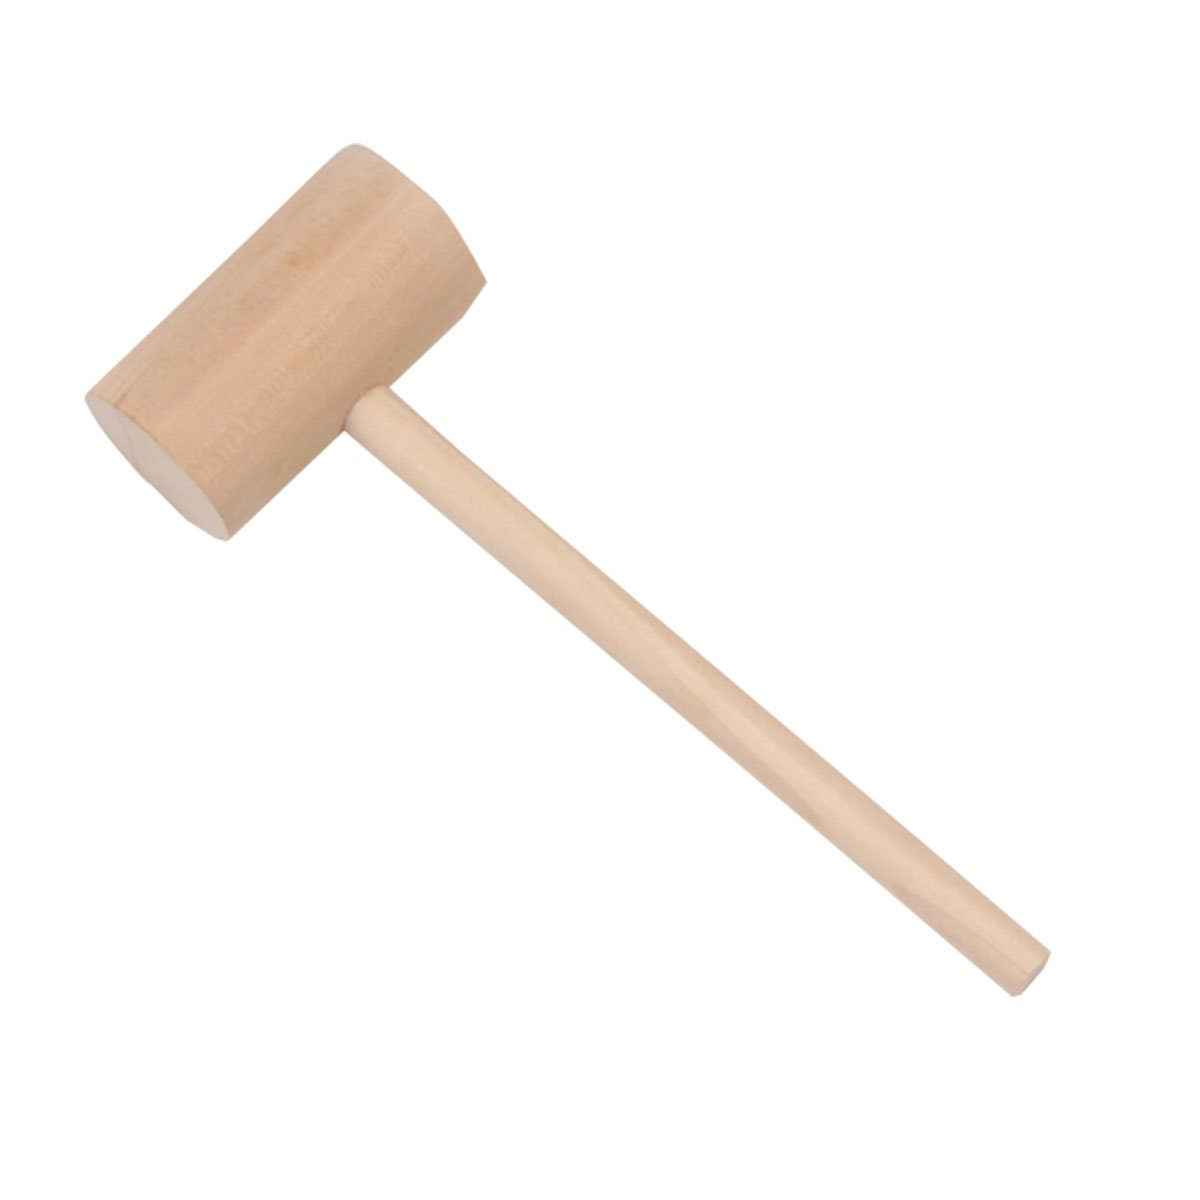 BESTONZON Seafood Crab Mallets,Natural Hardwood,Wooden Double Side Meat Tenderize,Set of 4